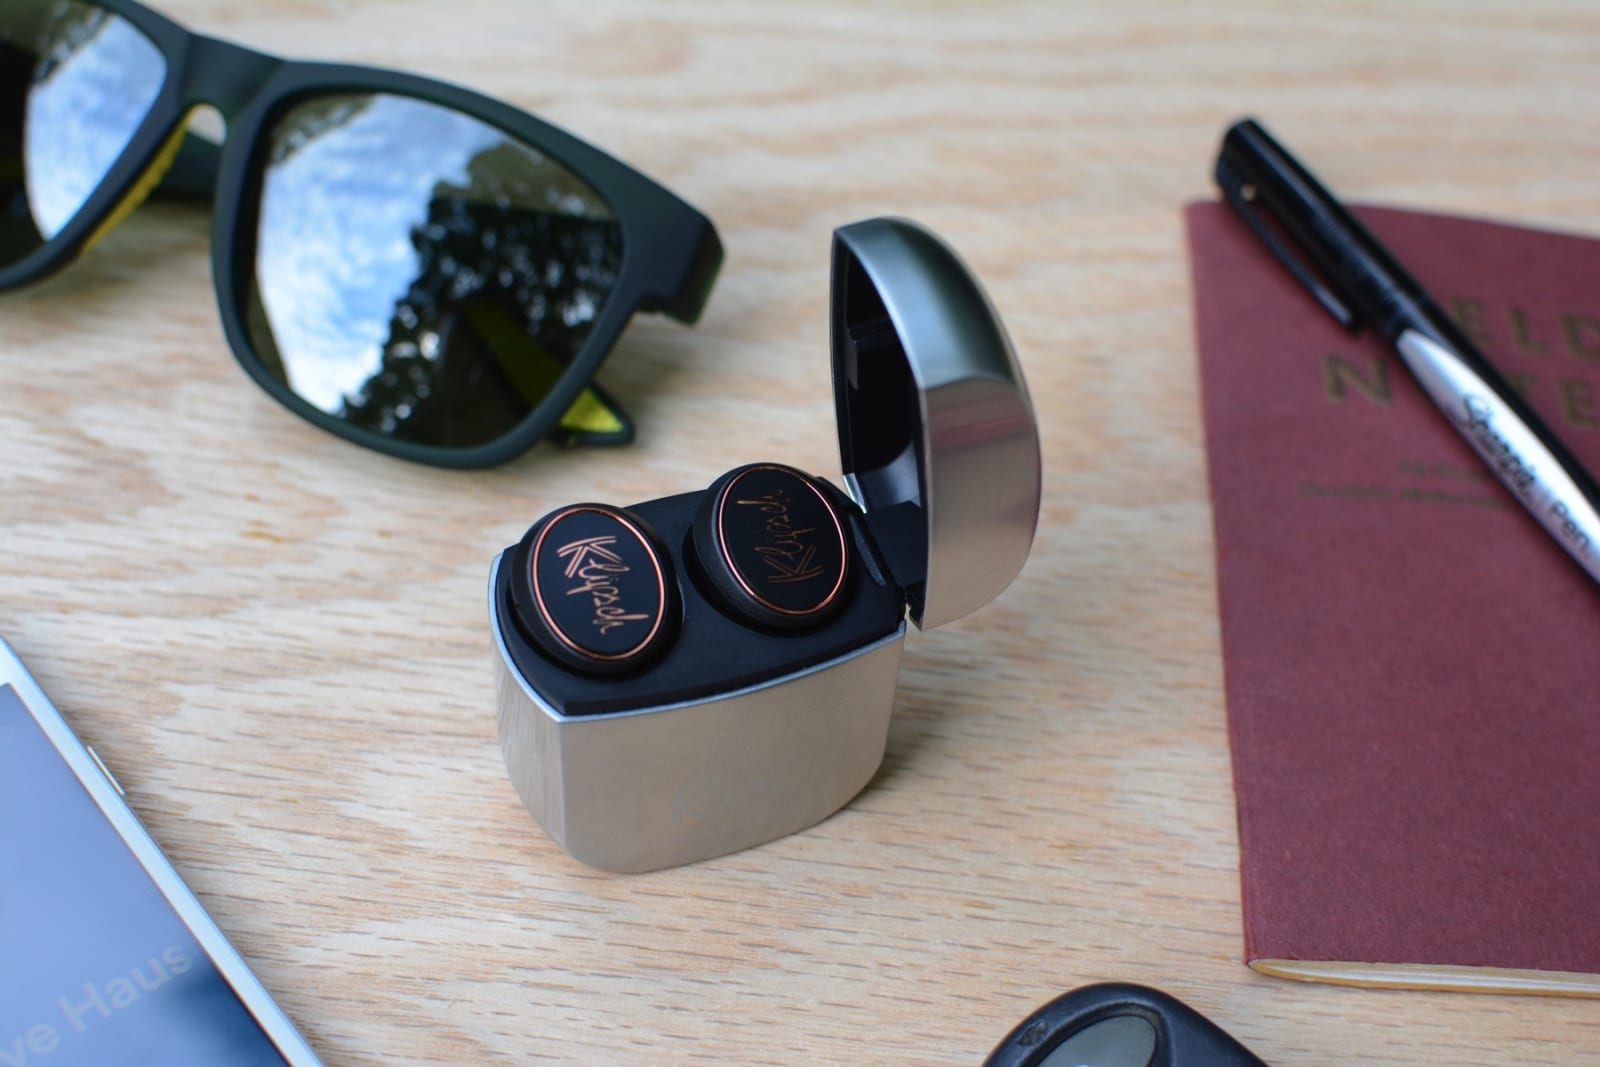 Klipsch T5 True Wireless review: Great-sounding, but flawed earbuds